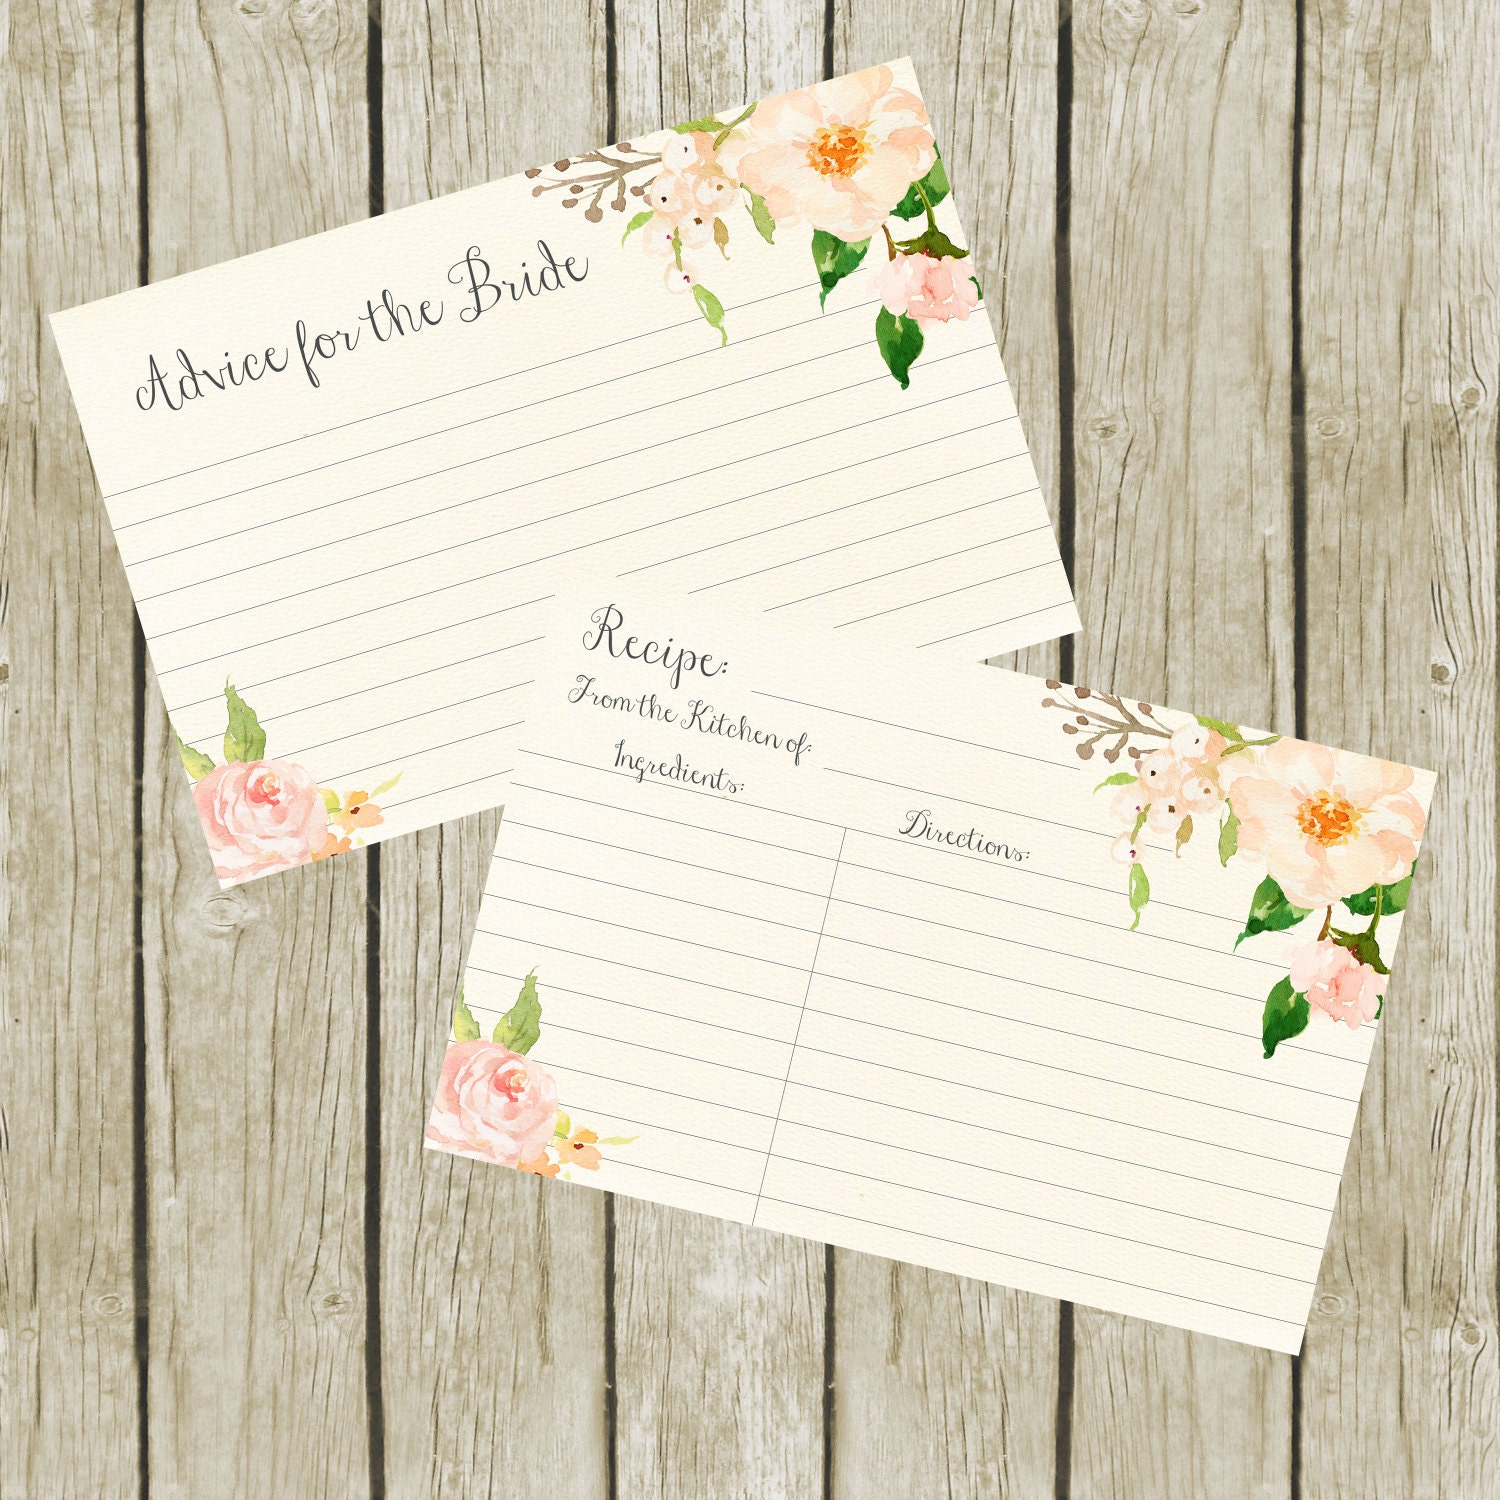 recipe cards for bridal shower advice for the bride cards